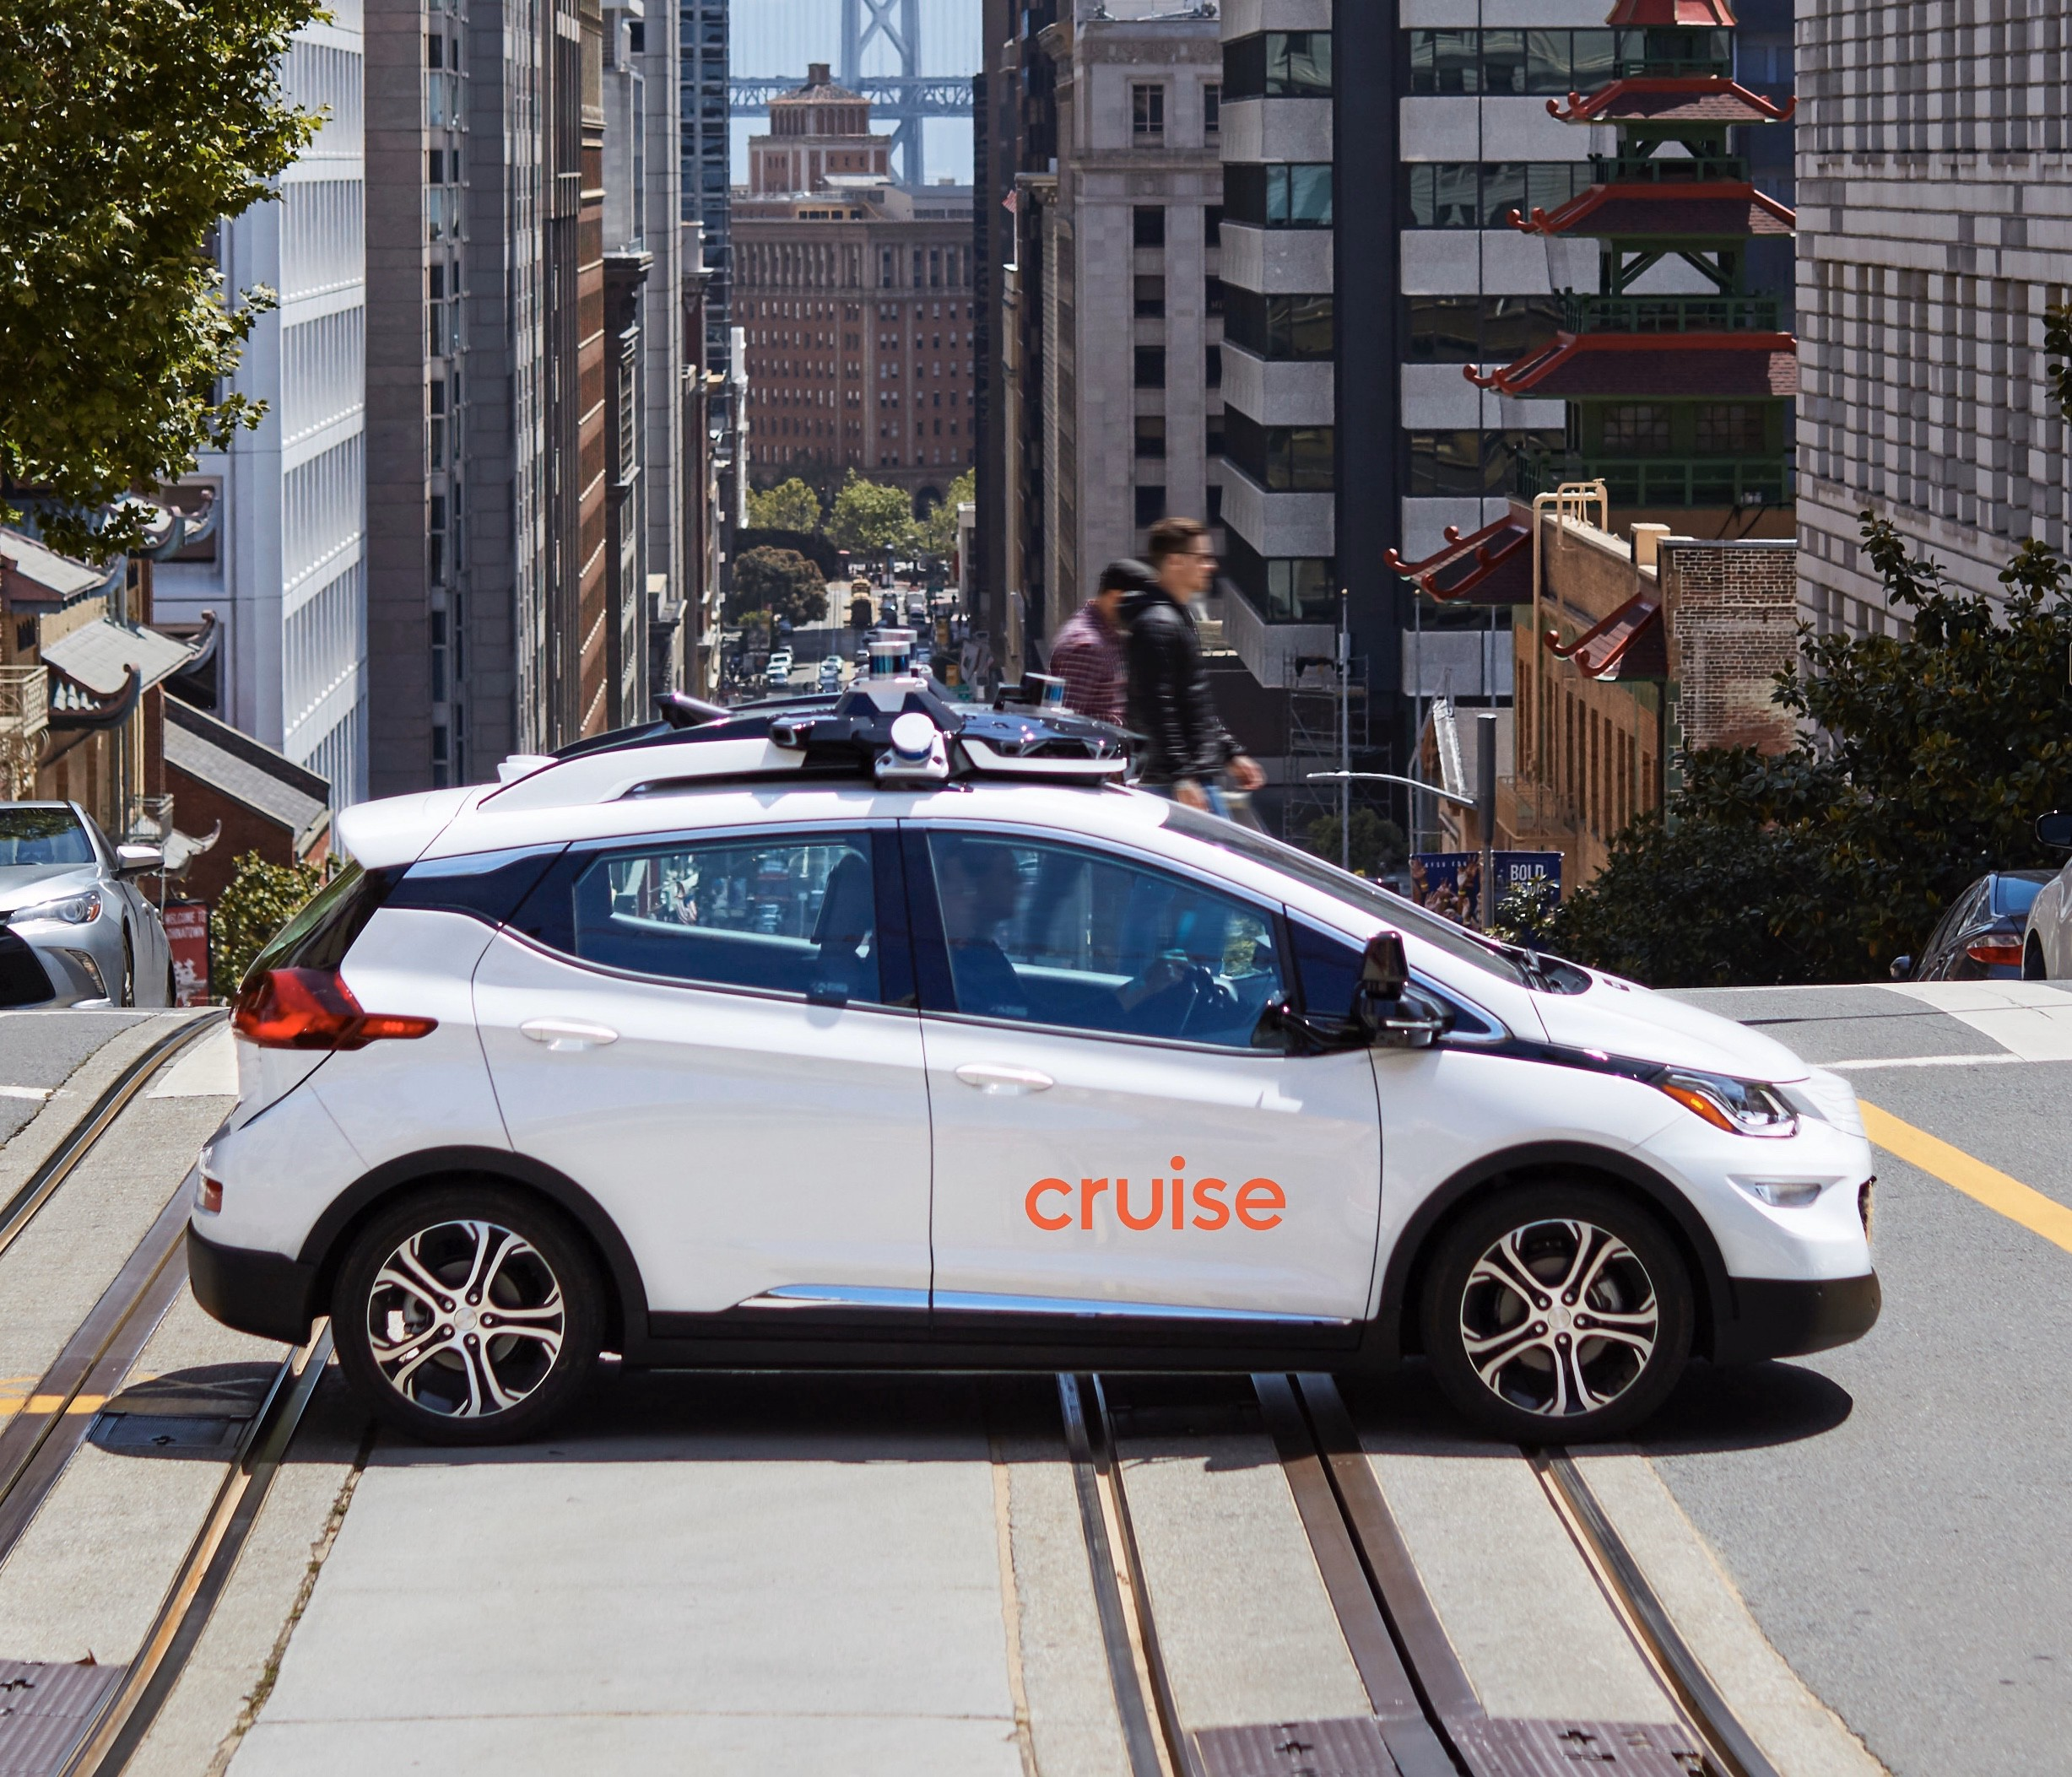 Cruise's self-driving car on the streets of SF.